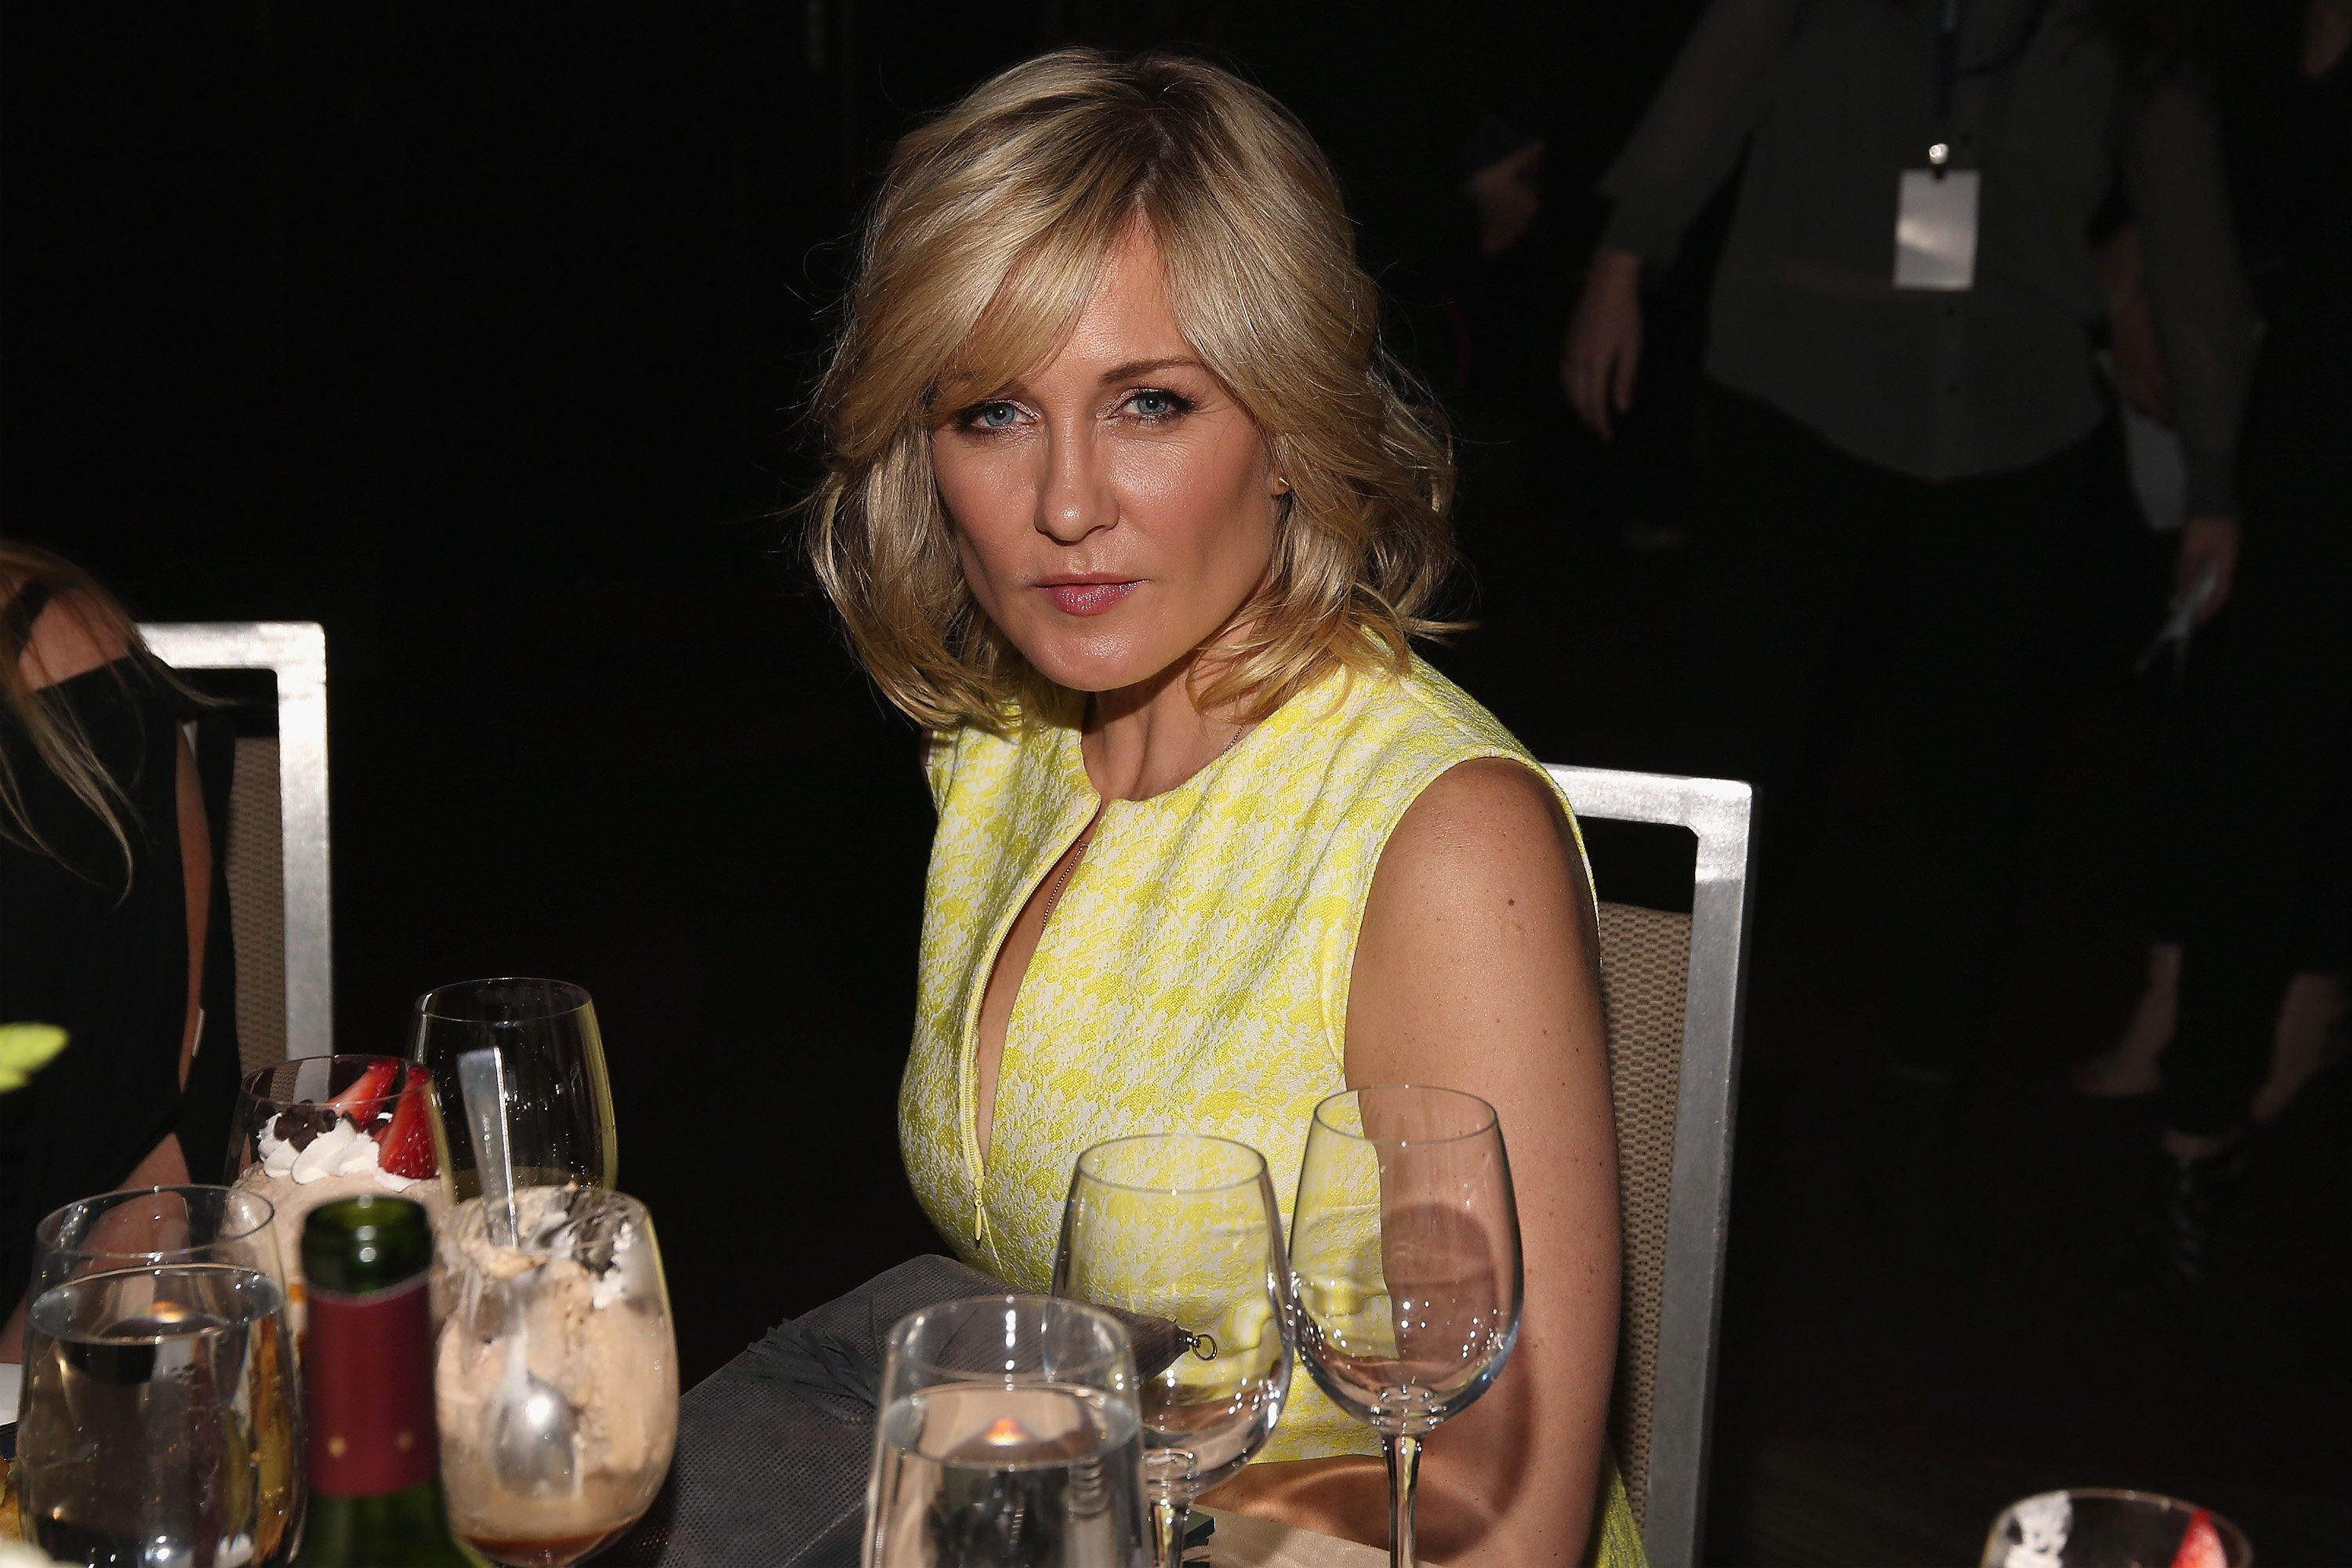 Amy Carlson attends the Federal Enforcement Homeland Security Foundation 2016 Ridge Awards at Sheraton Times Square on May 19, 2016 in New York City | Photo: Getty Images